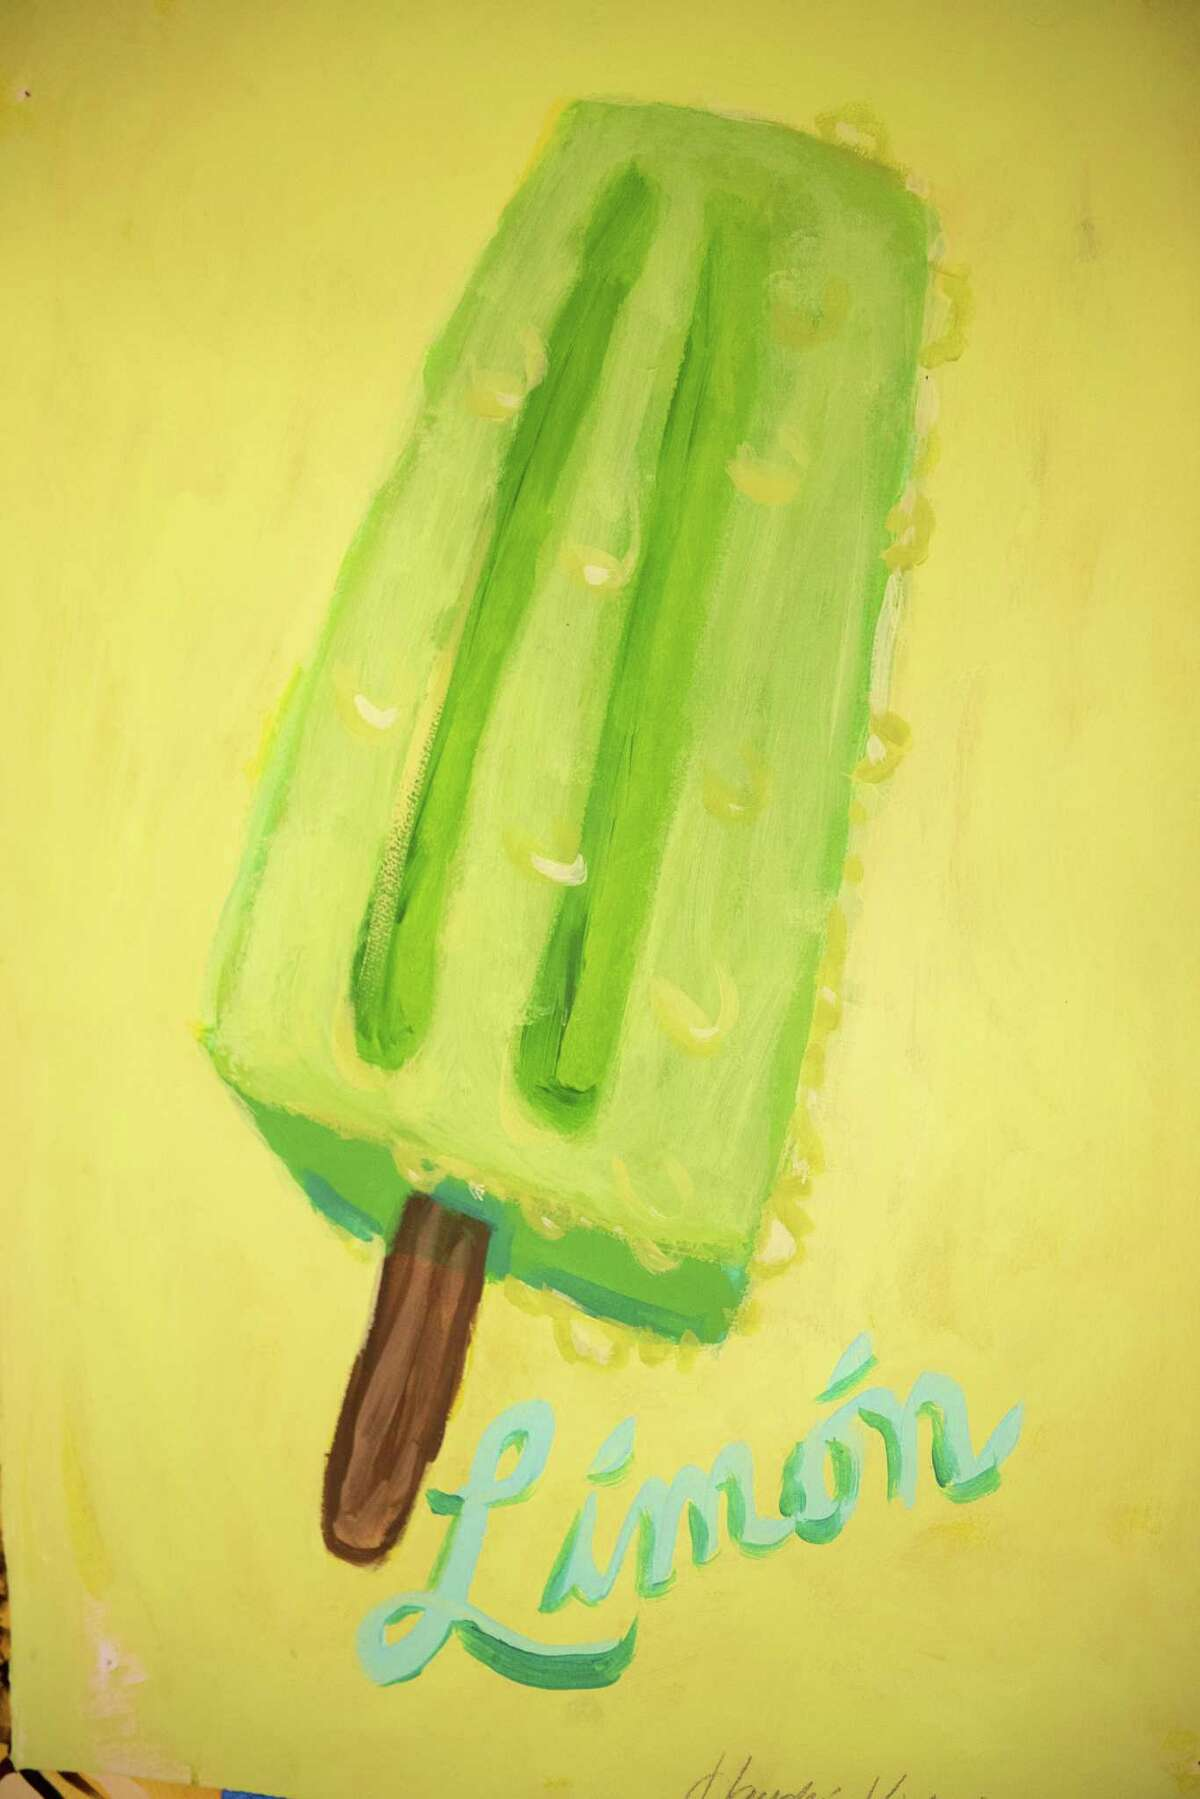 A paleta is one of the stand-ins for the staff in artist Victoria Suescums reinterpretation of traditional tarot card symbols.